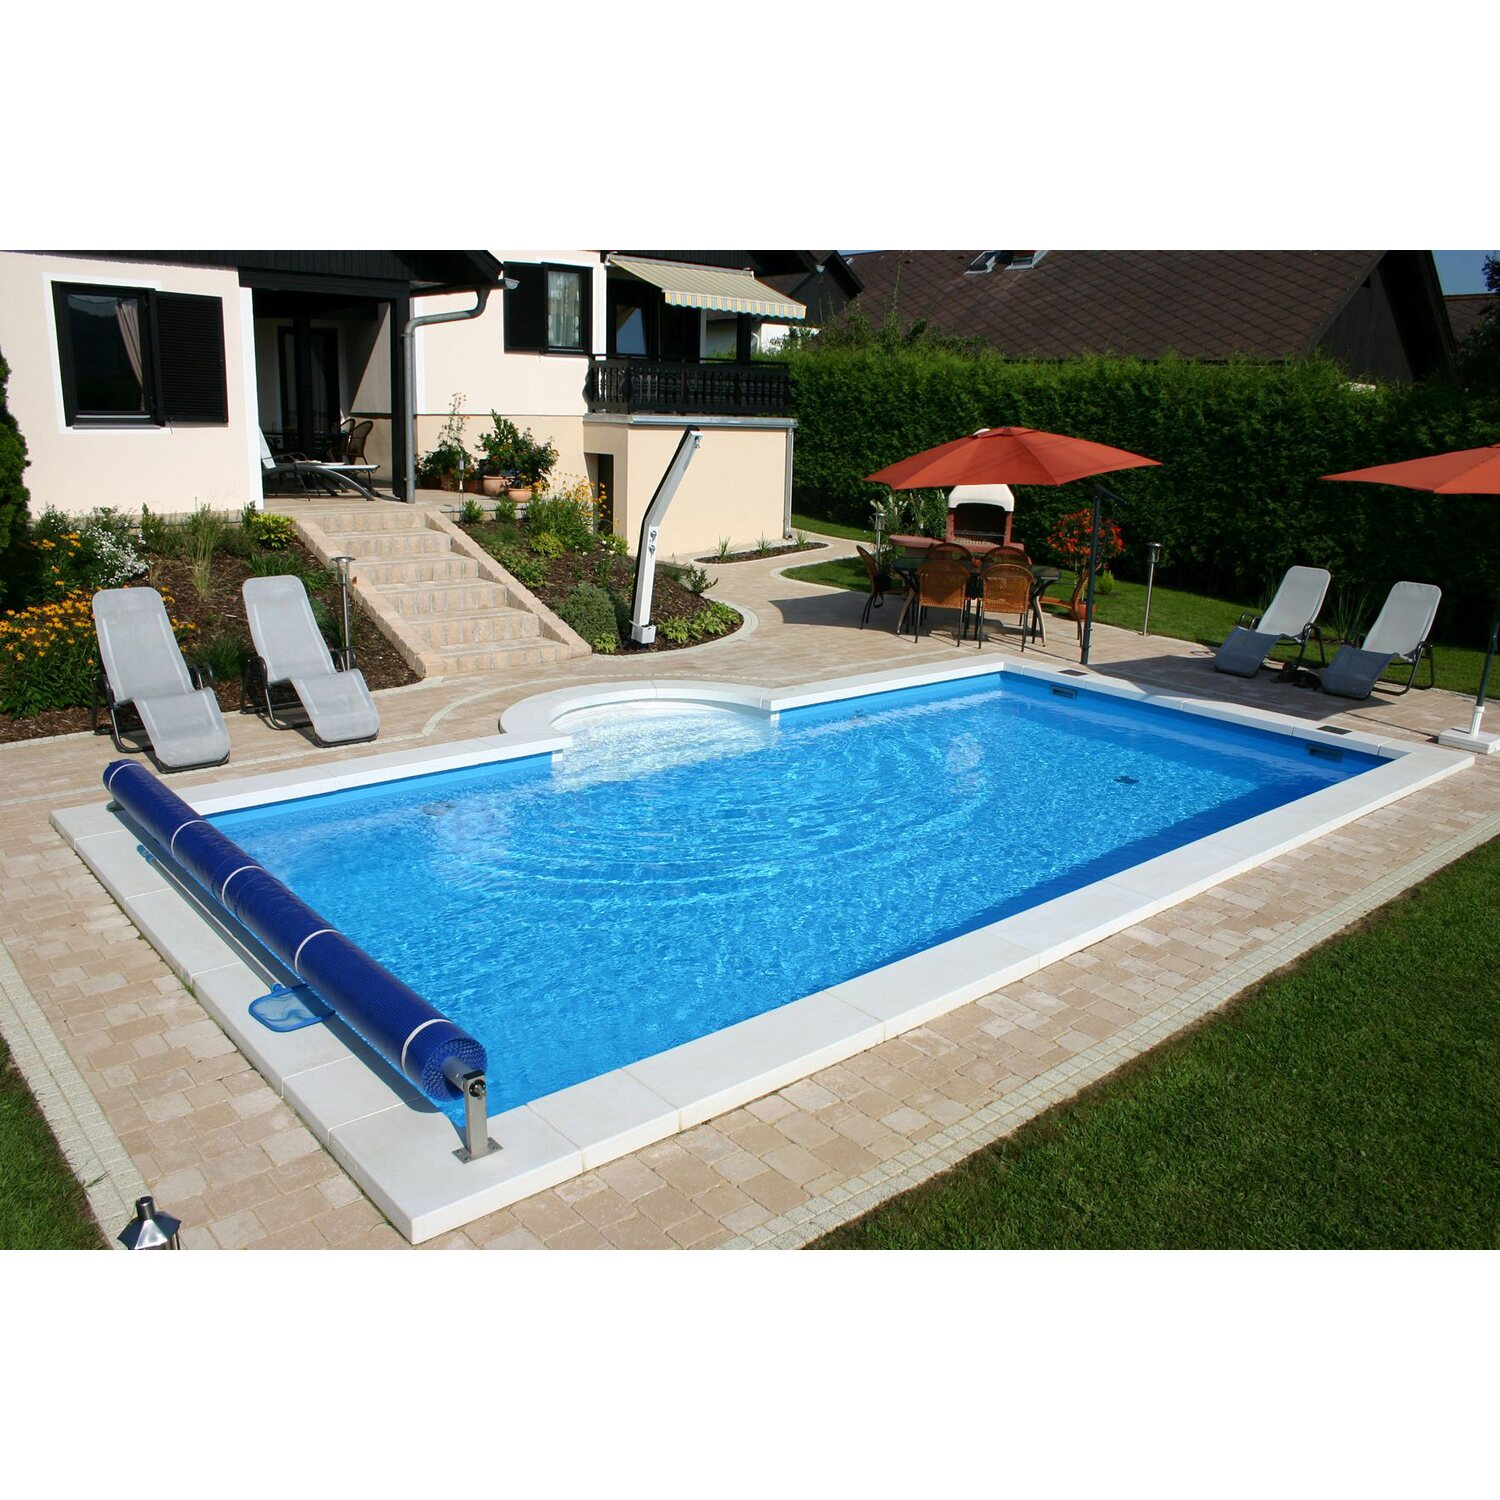 Summer fun styropor pool set london 800 cm x 400 cm x 150 for Pool staubsauger obi